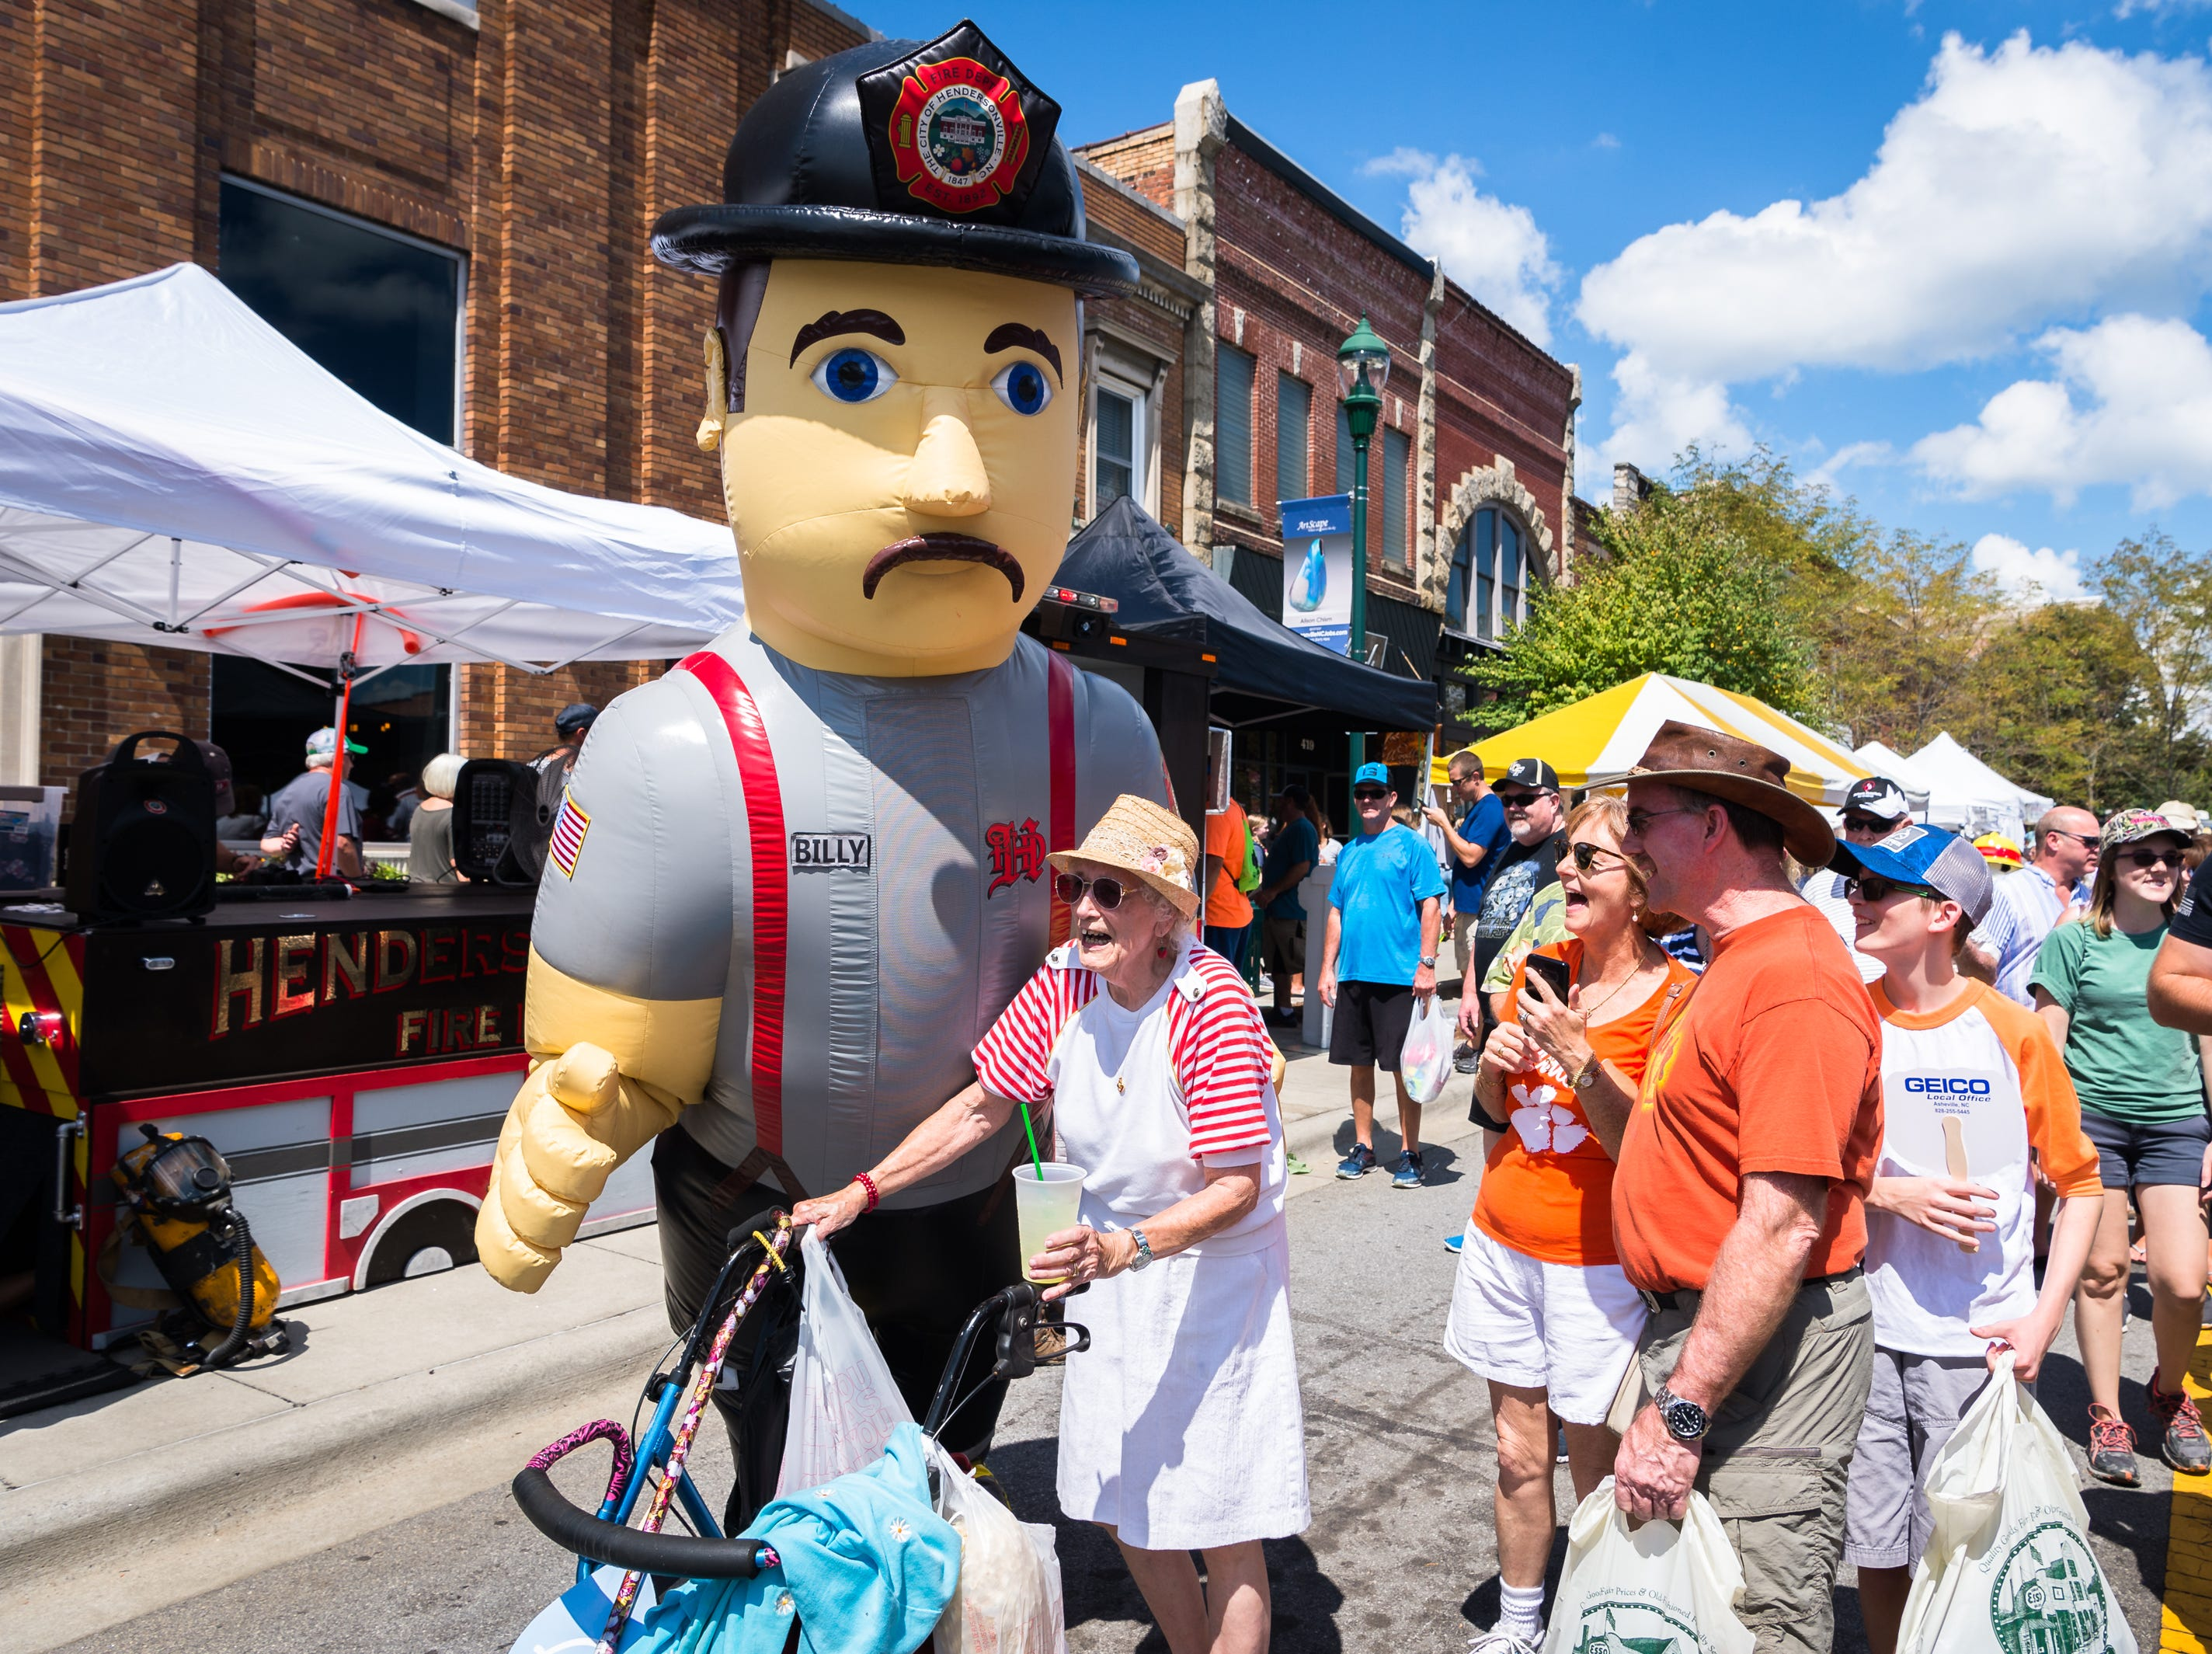 Thousands of people filled Main Street in Hendersonville for the 72nd annual North Carolina Apple Festival Saturday, September 1, 2018.